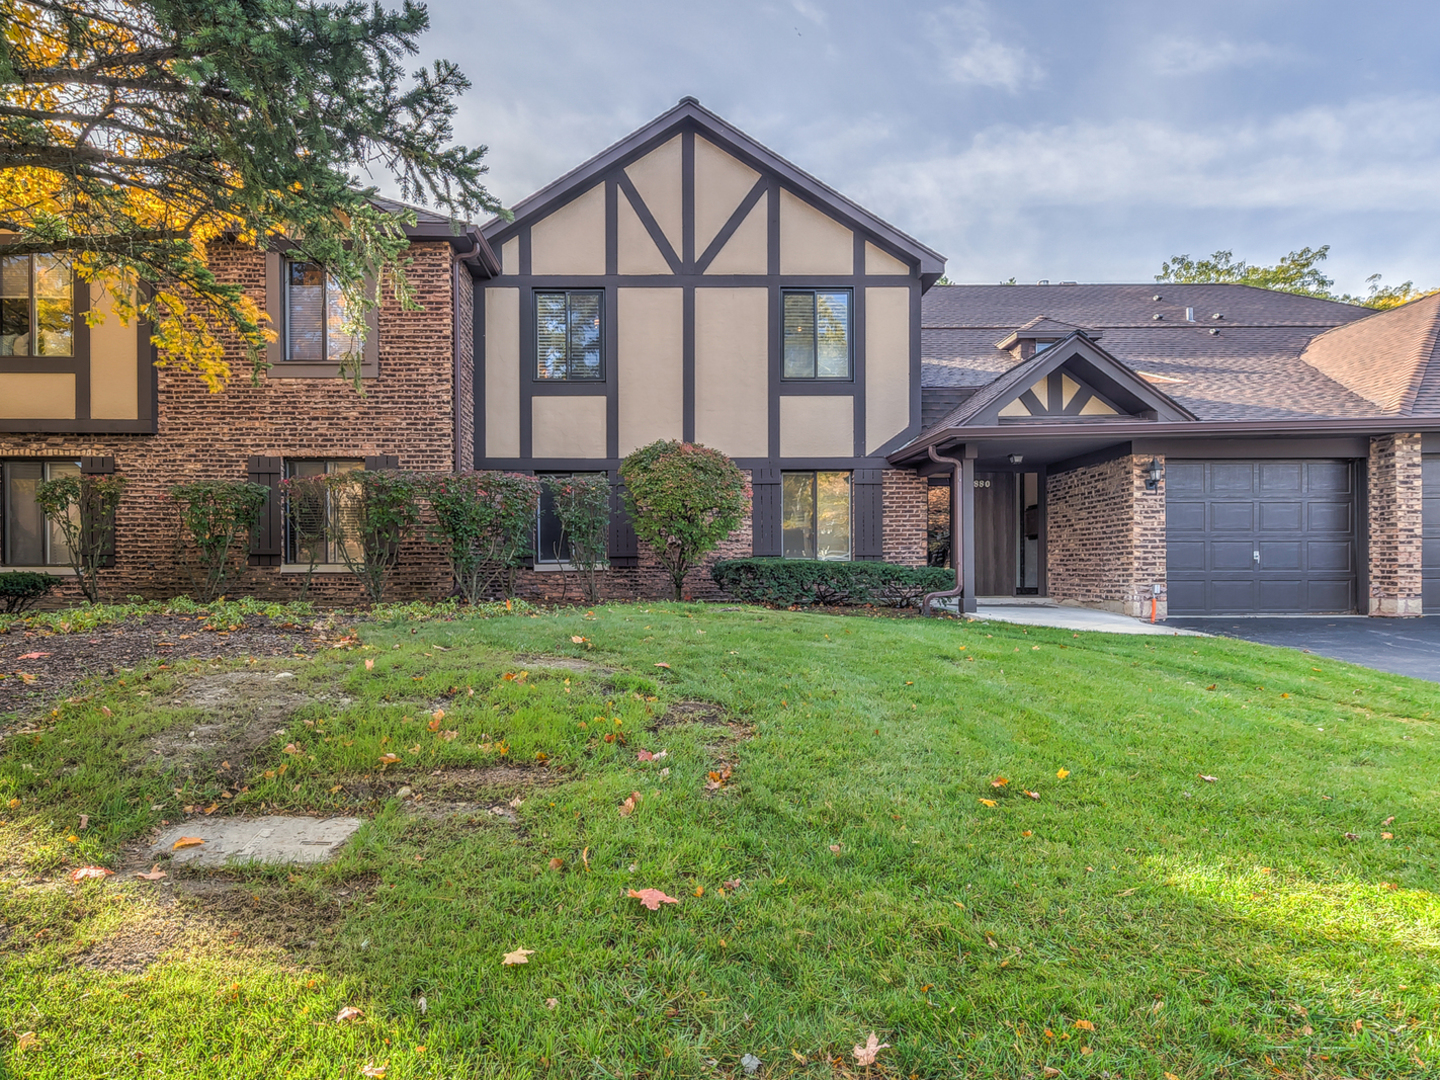 880 SHELDON Court, Wheaton in Du Page County, IL 60187 Home for Sale